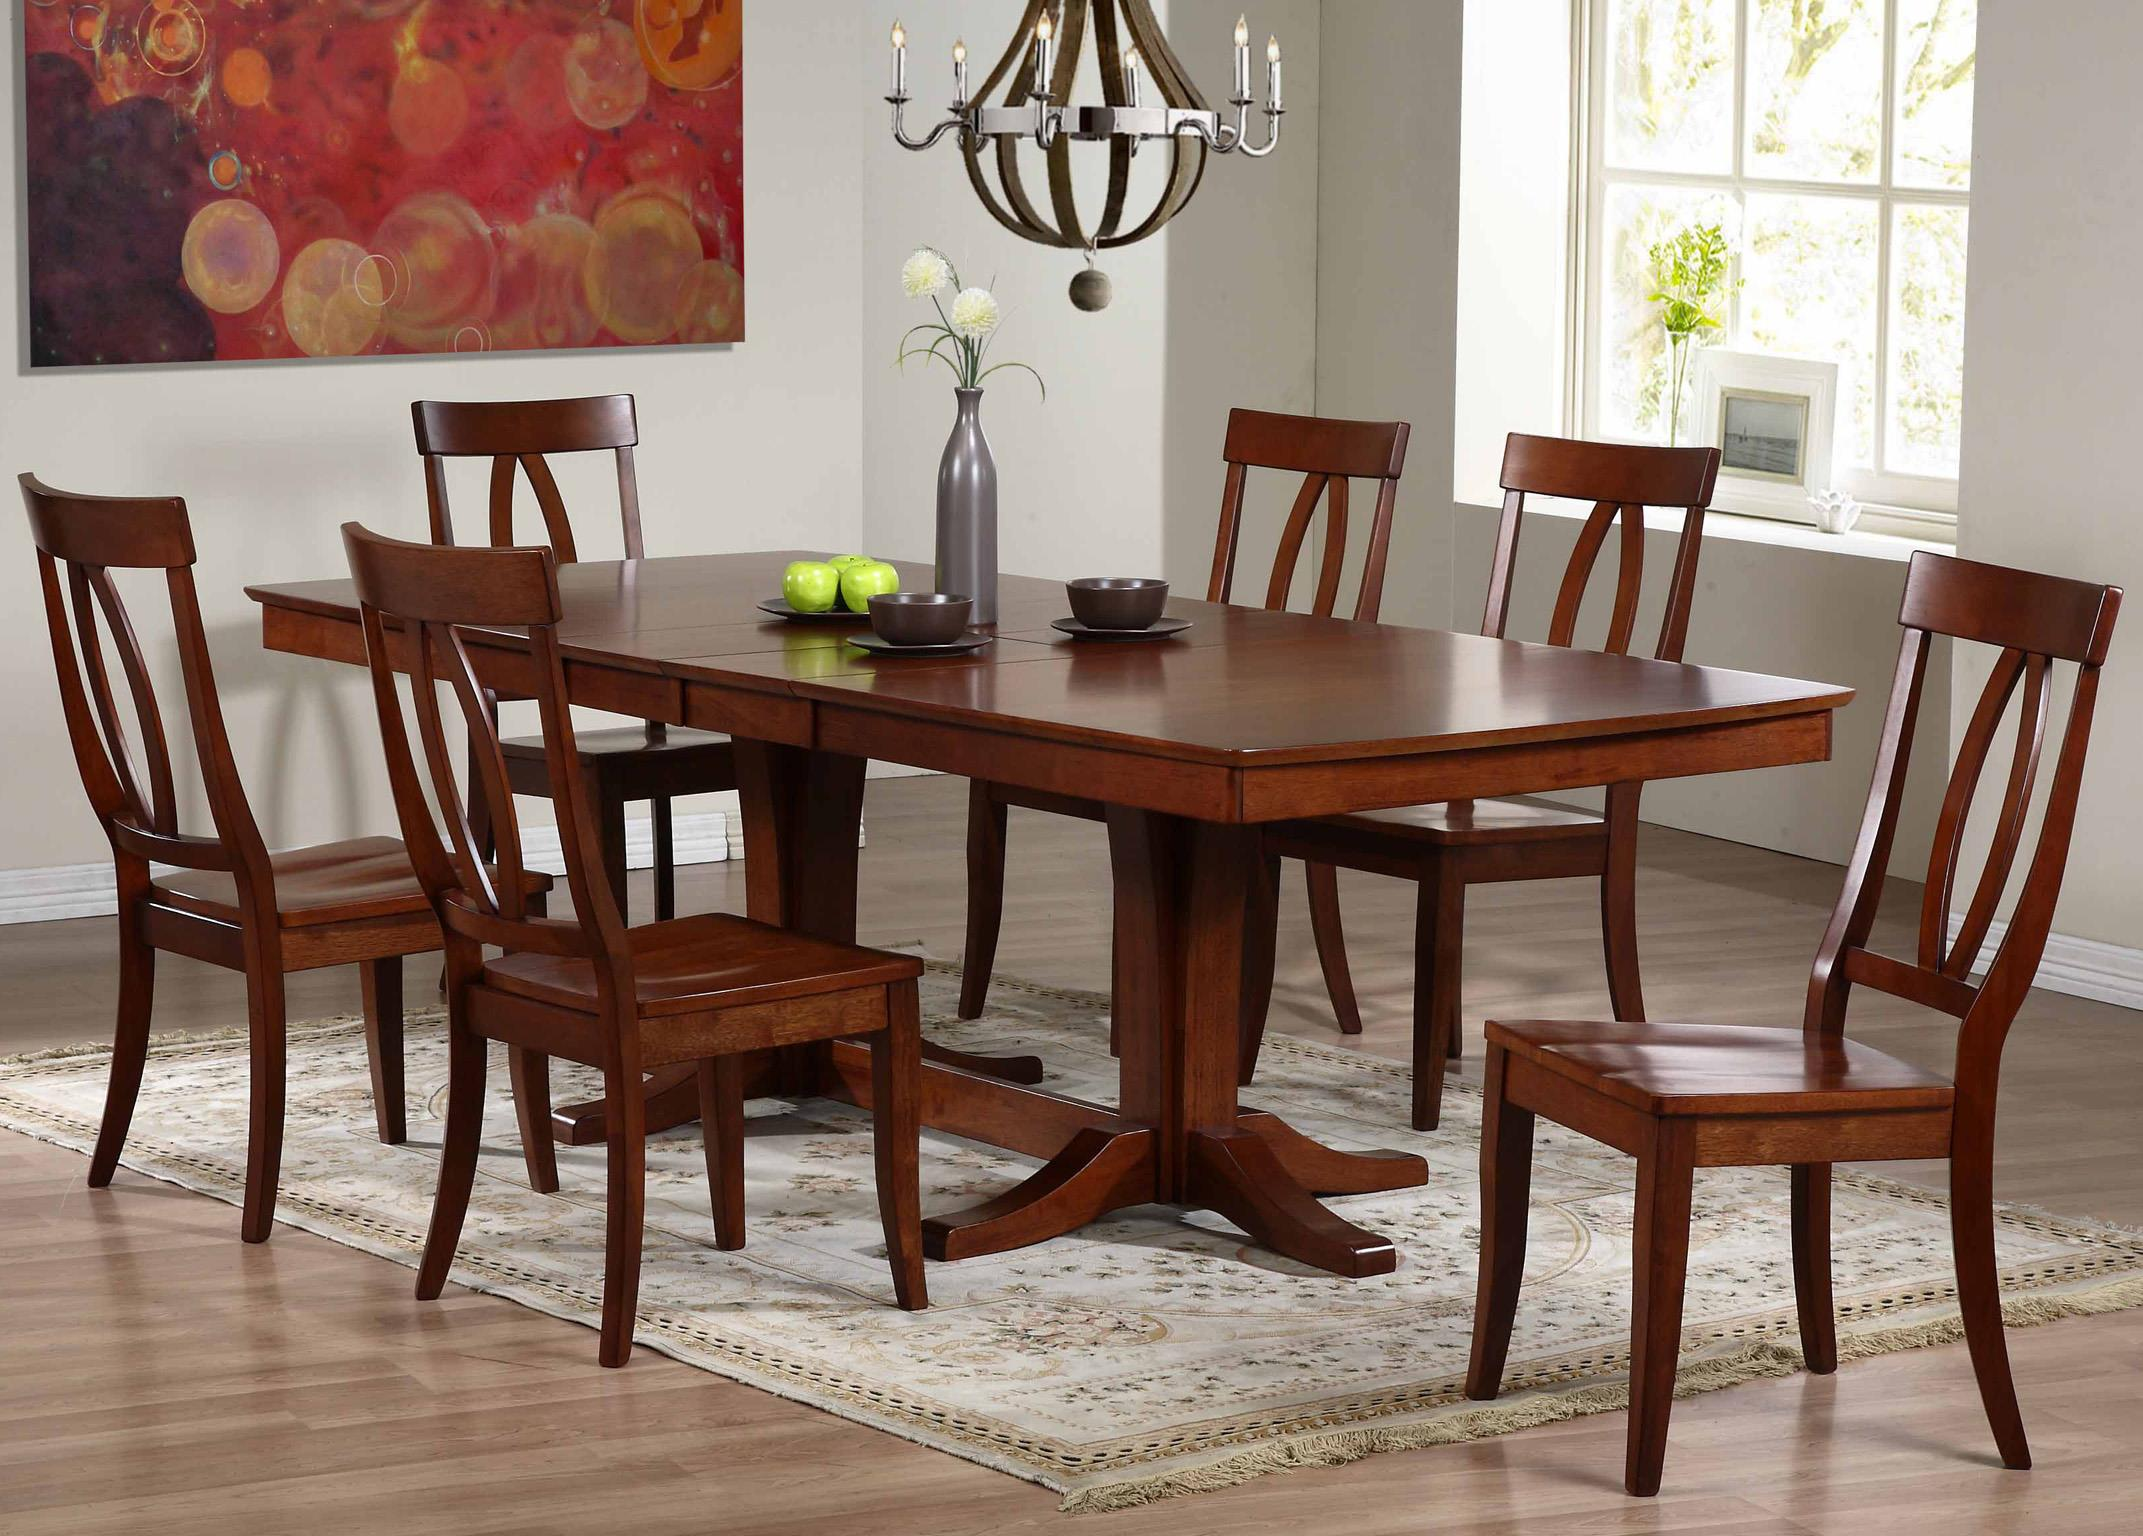 Beau Winners Only Santa Barbara SBF 7 Piece Dining Set With Keyhole Back Chairs    Item Number